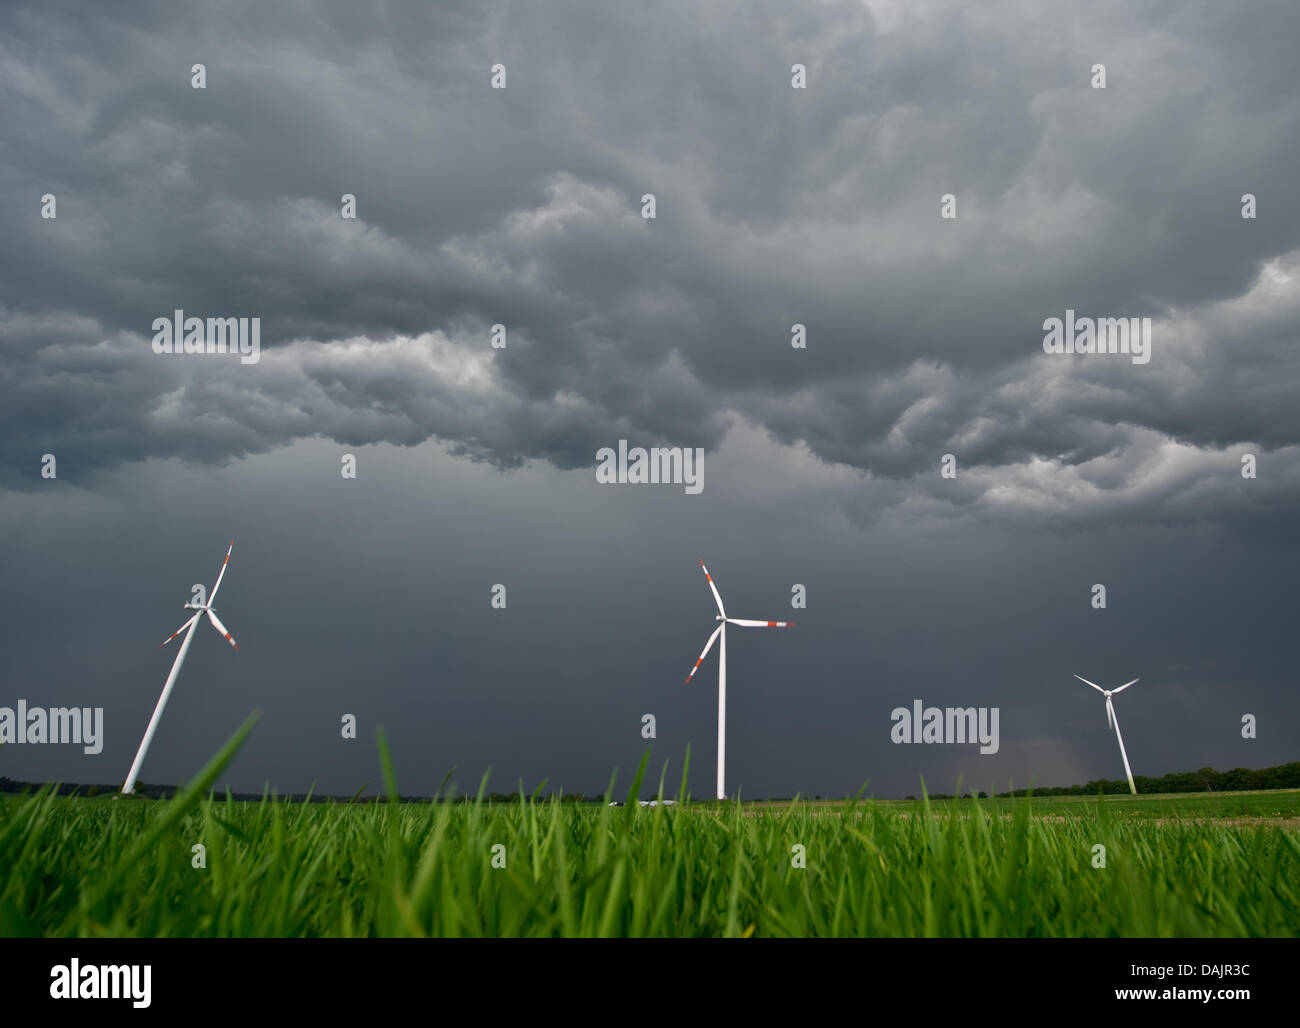 Thunderstorms approaches a field with wind wheels near Sieversdorf, Germany, 26 April 2011. PHOTO: PATRICK PLEUL Stock Photo